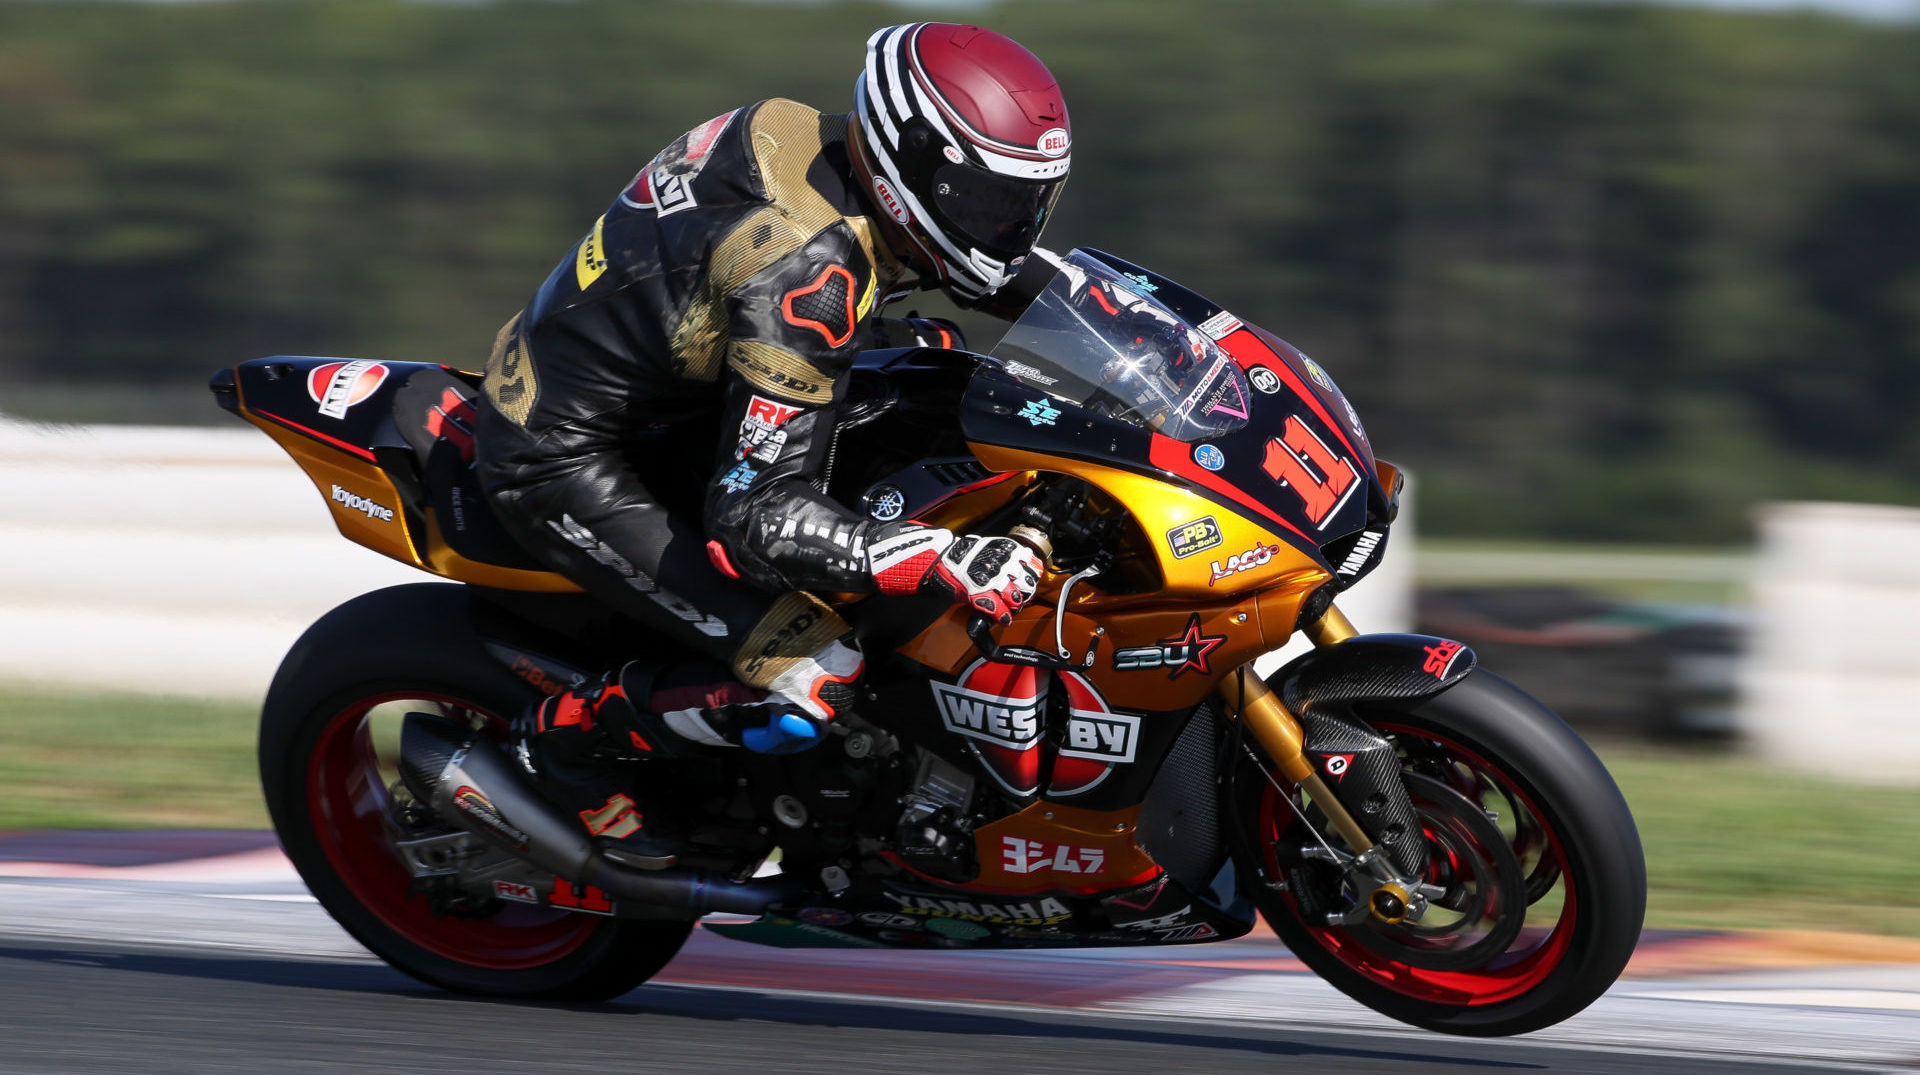 Westby Racing Superbike rider Mathew Scholtz (11). Photo courtesy Westby Racing.